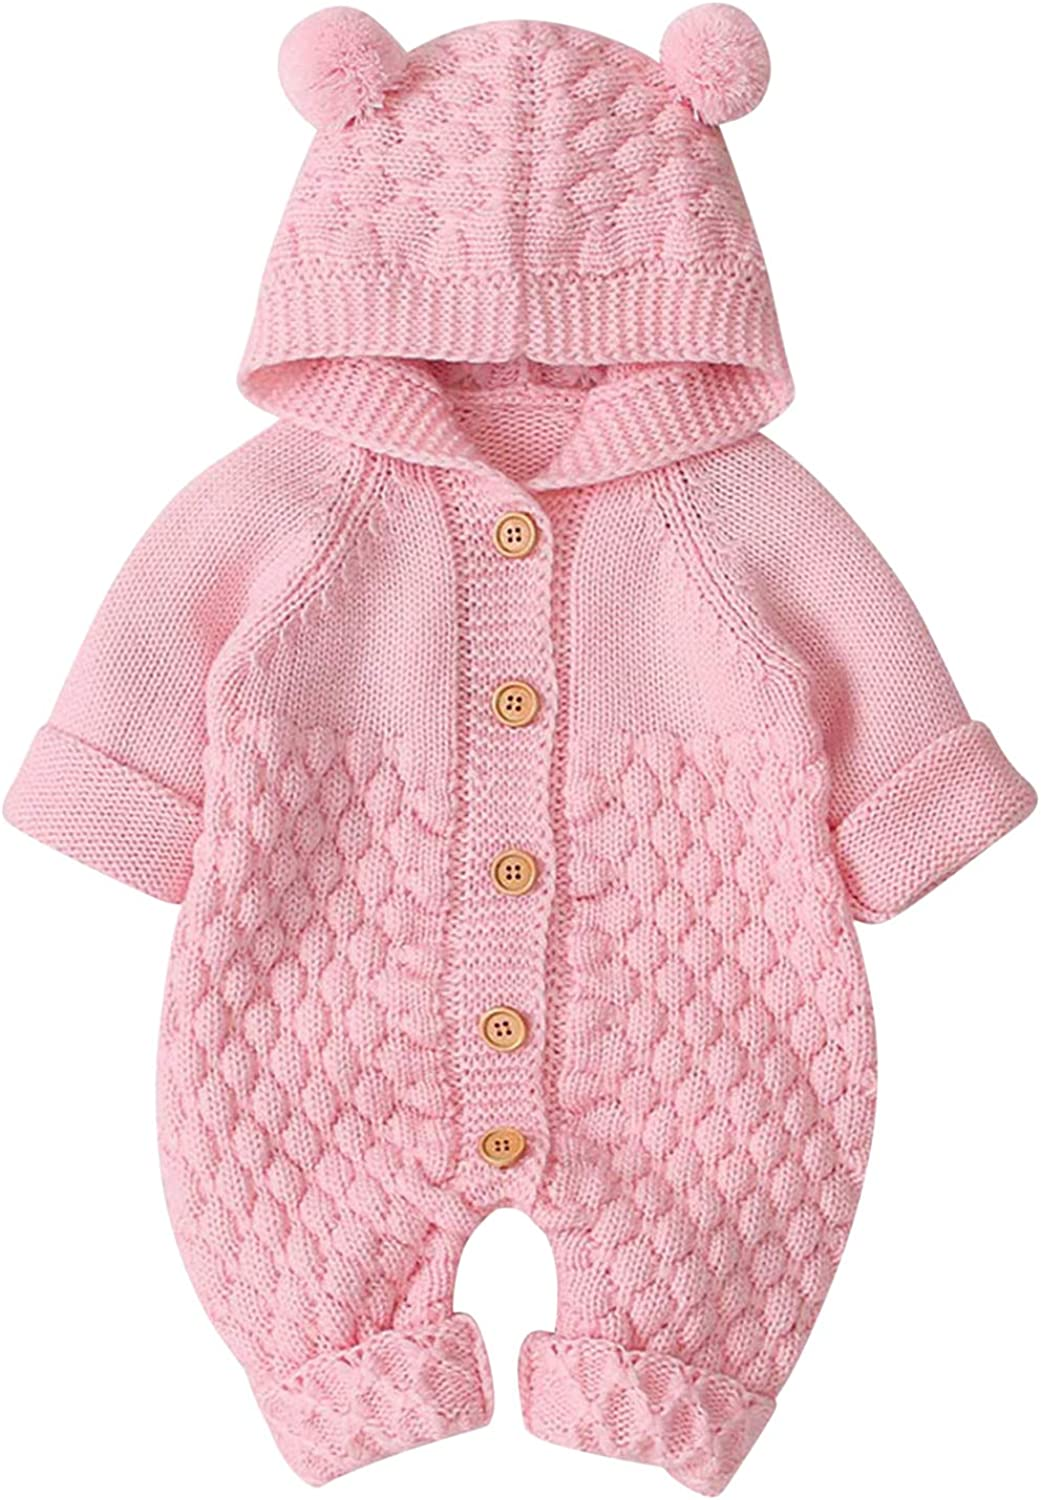 De feuilles Newborn Baby Hooded Knitted Romper Sweater Jumpsuit One-Piece Winter Outfit for Boys Girls